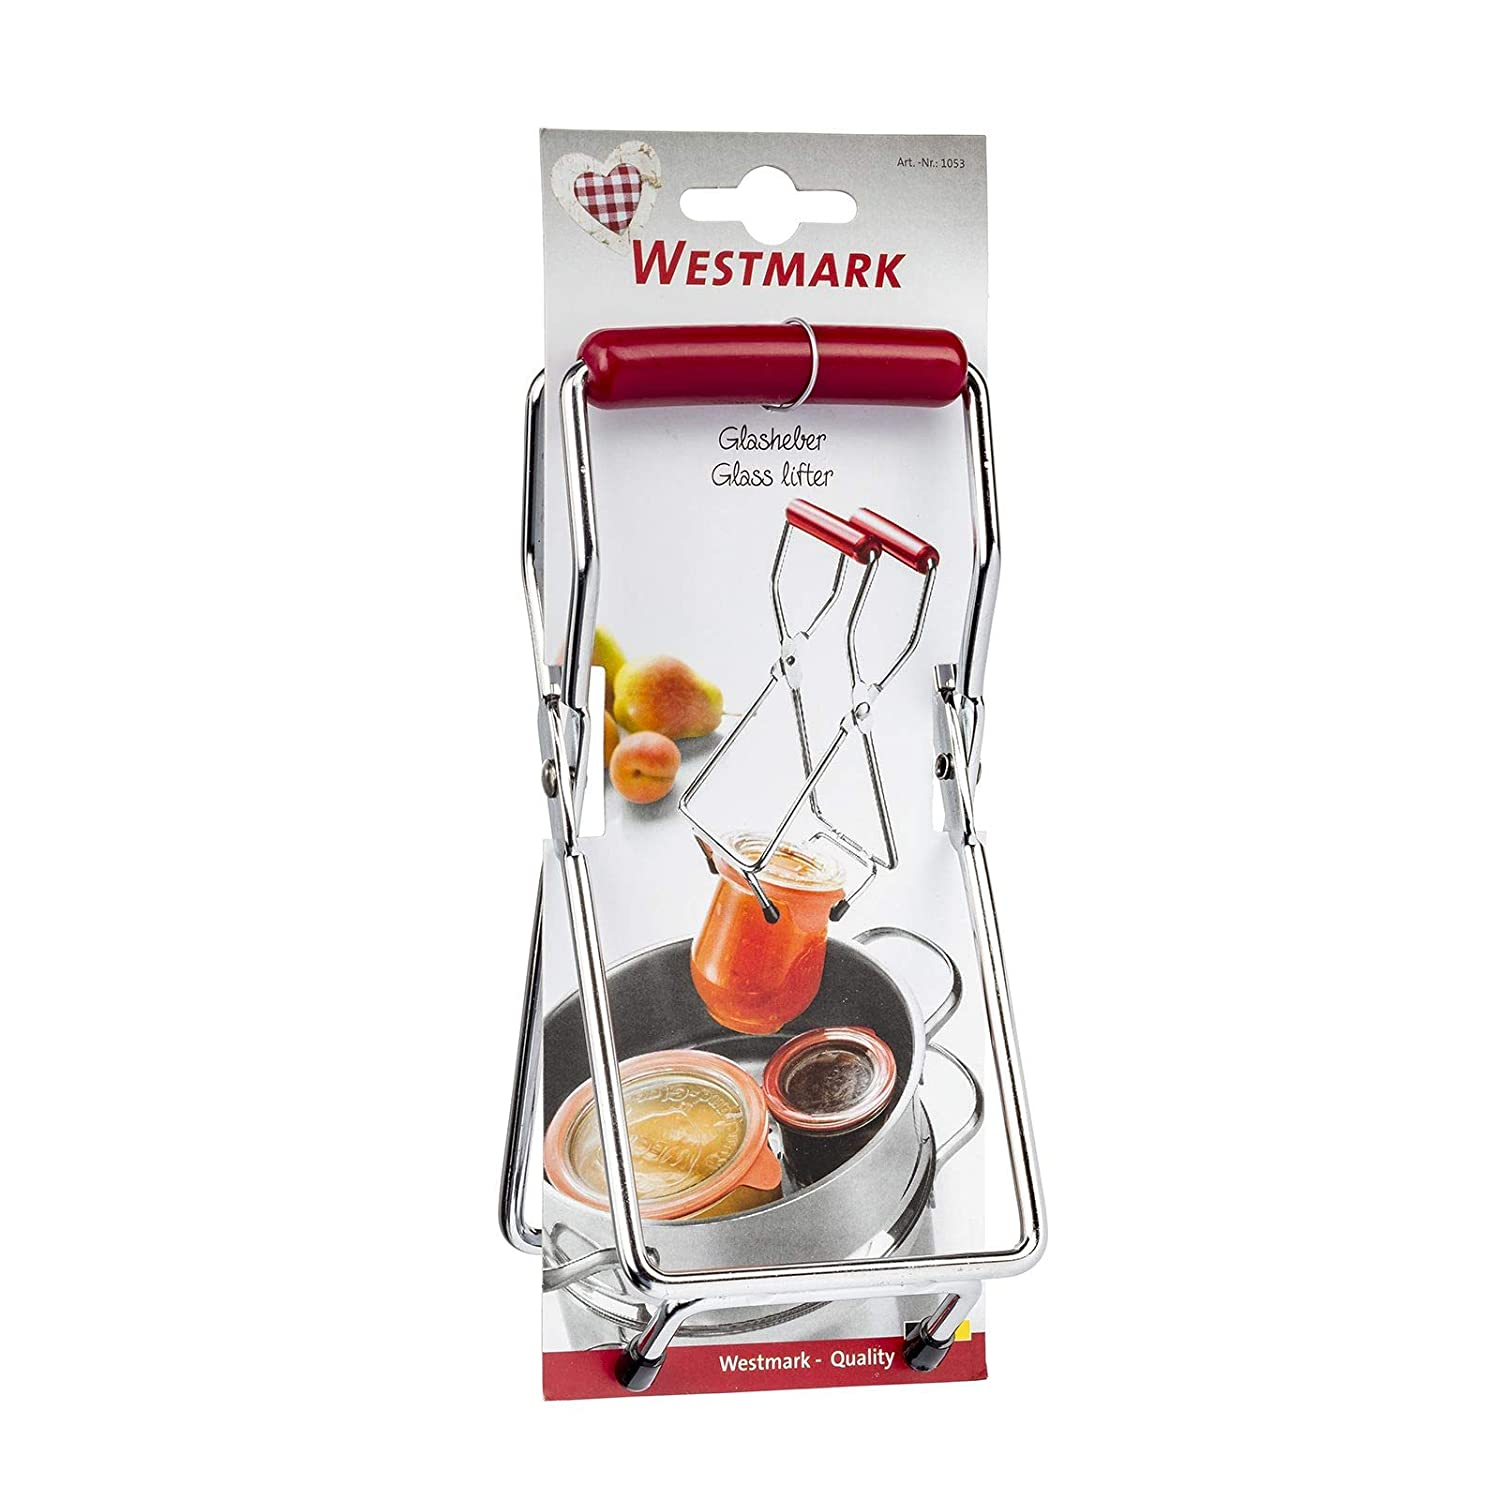 Westmark 10532270 Glass Lifter Silver//Red